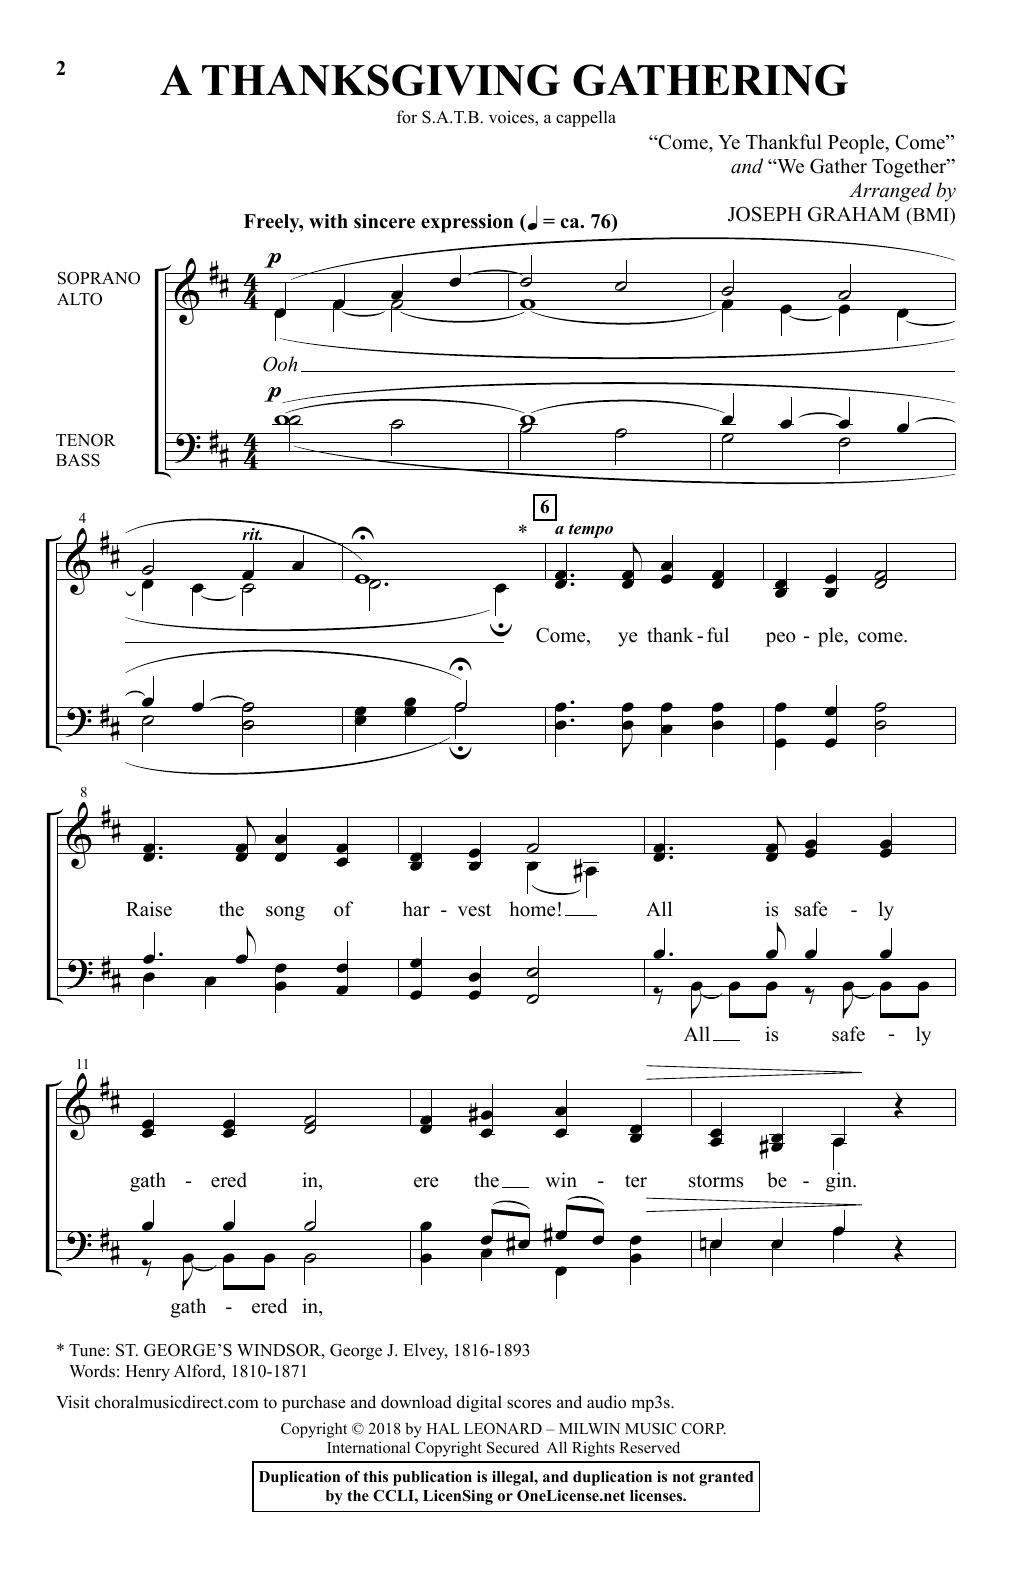 Joseph Graham A Thanksgiving Gathering sheet music notes and chords. Download Printable PDF.